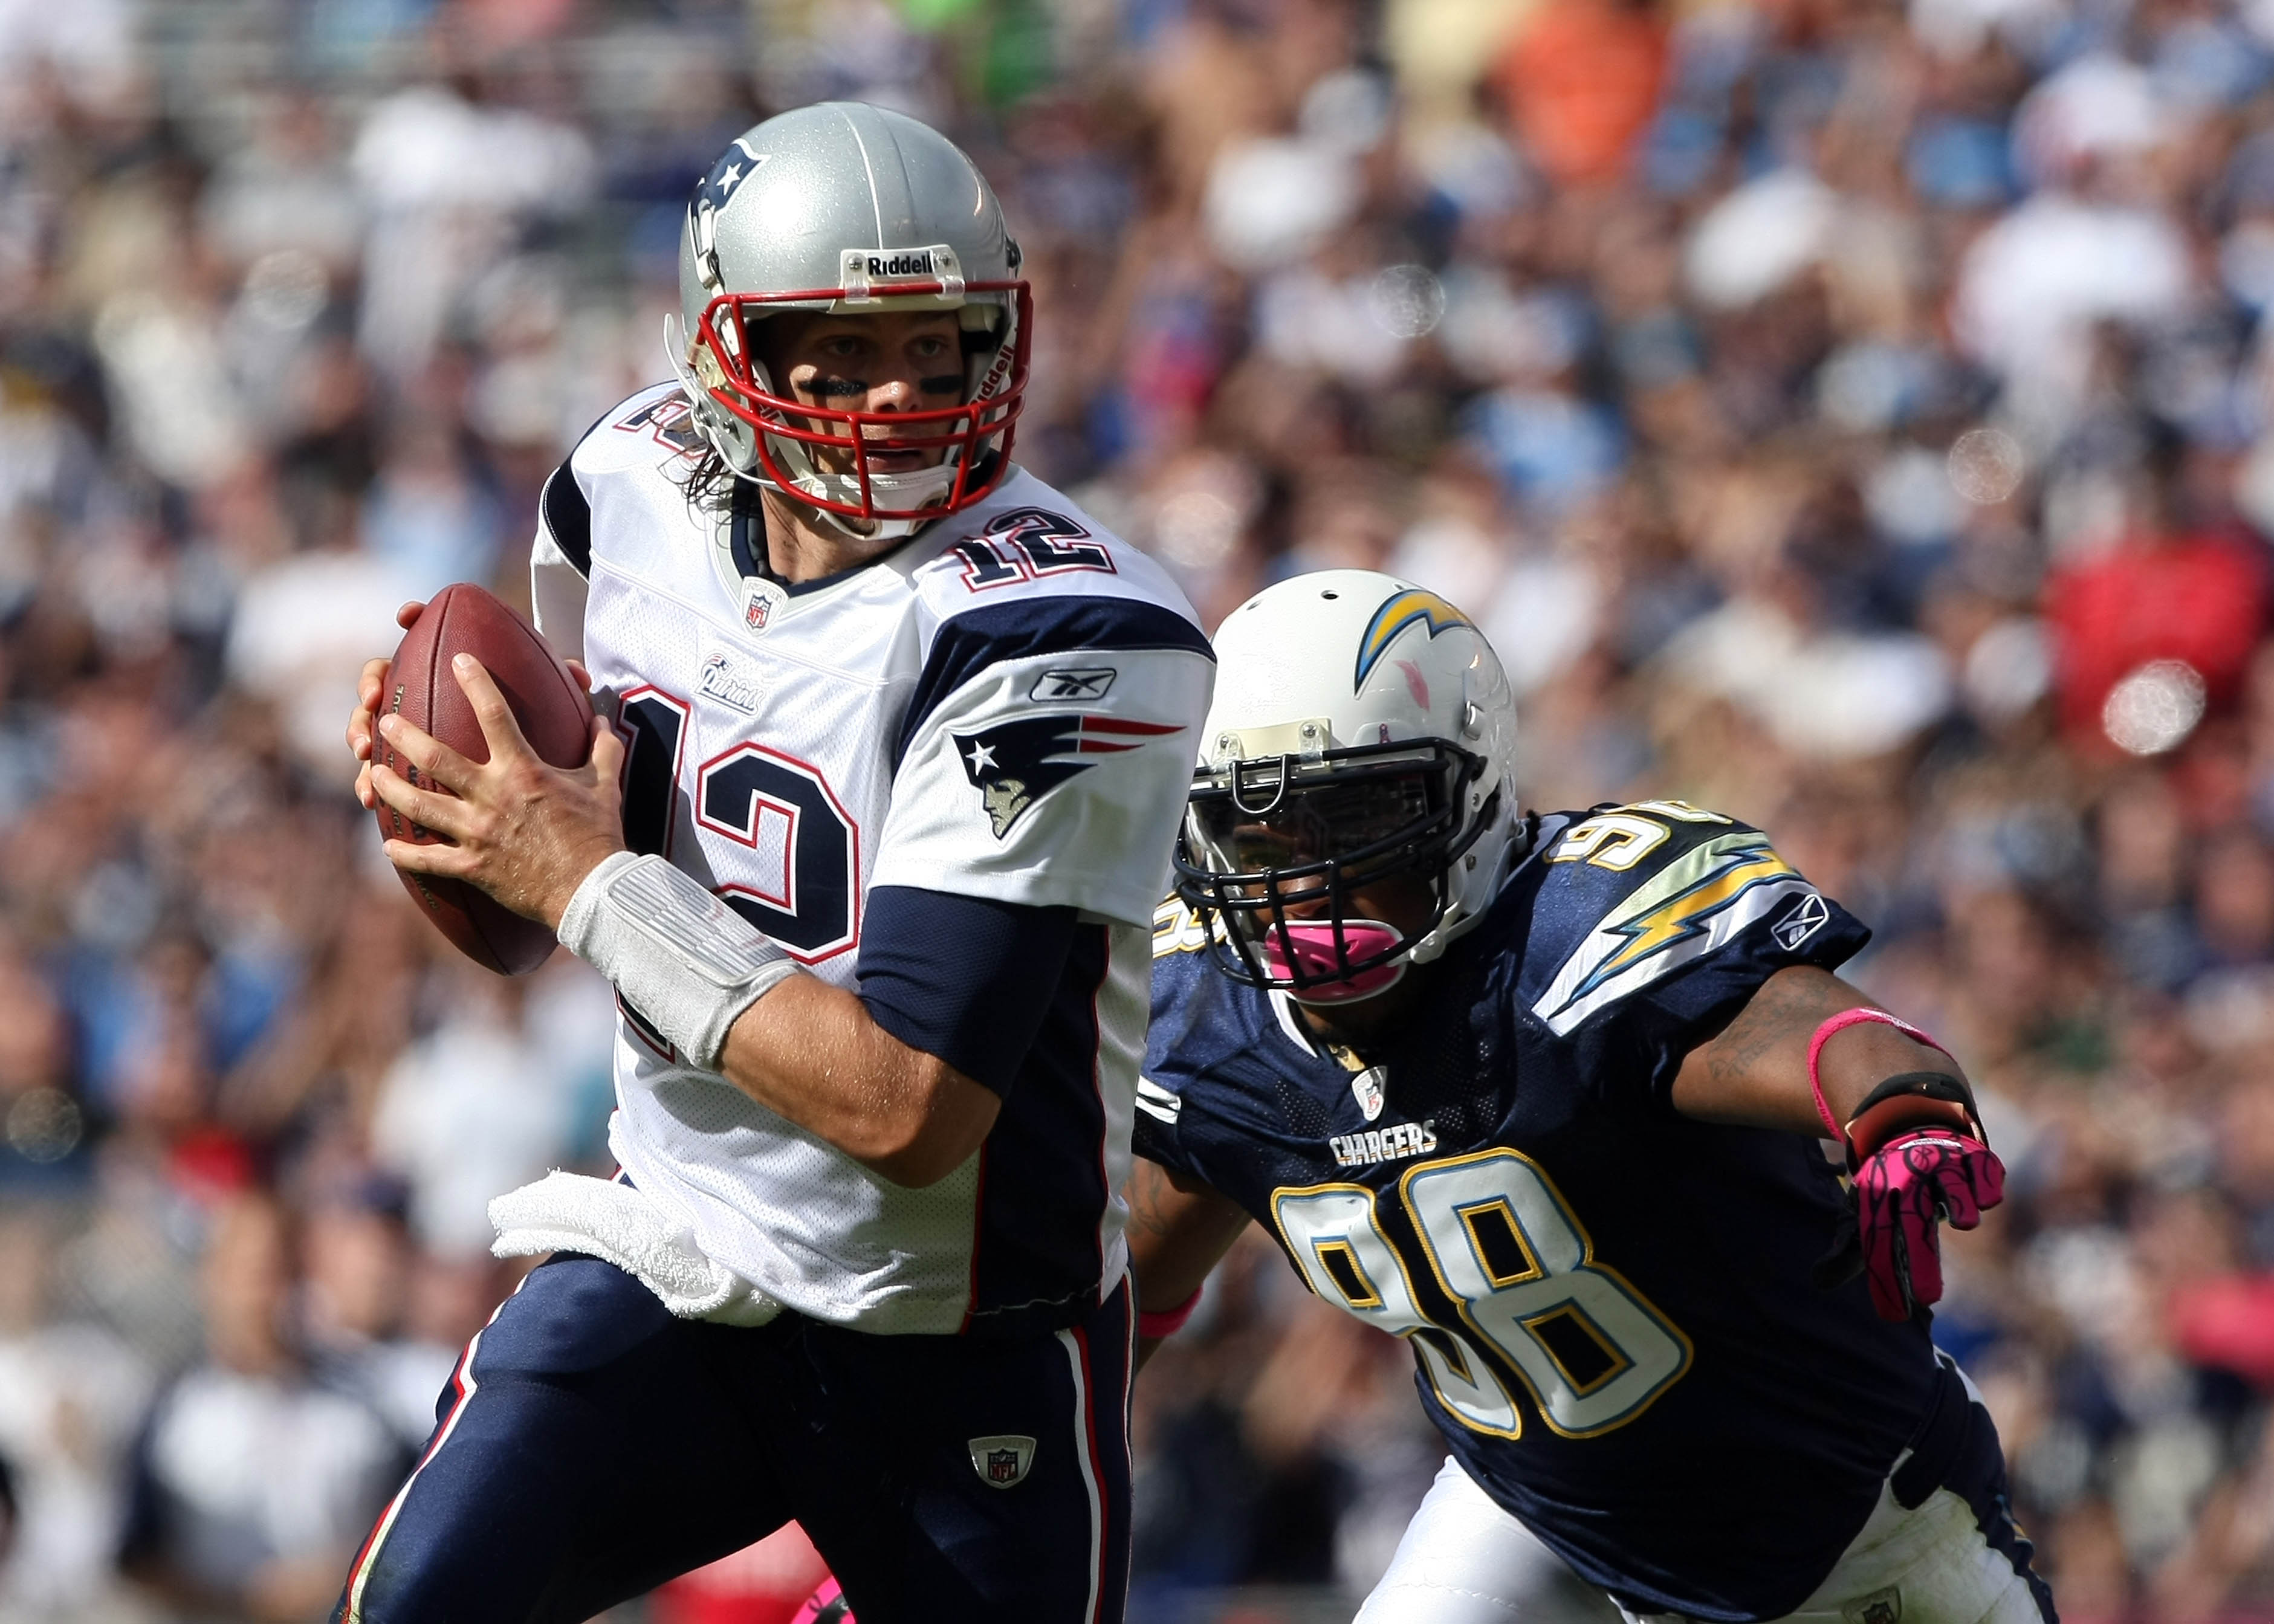 SAN DIEGO - OCTOBER 24:  Quarterback Tom Brady #12 of the New England scrambles with the ball against pressure from the pass rush of Antwan Barnes #98 of the San Diego Chargers during their NFL game on October 24, 2010 at Qualcomm Stadium in San Diego, Ca